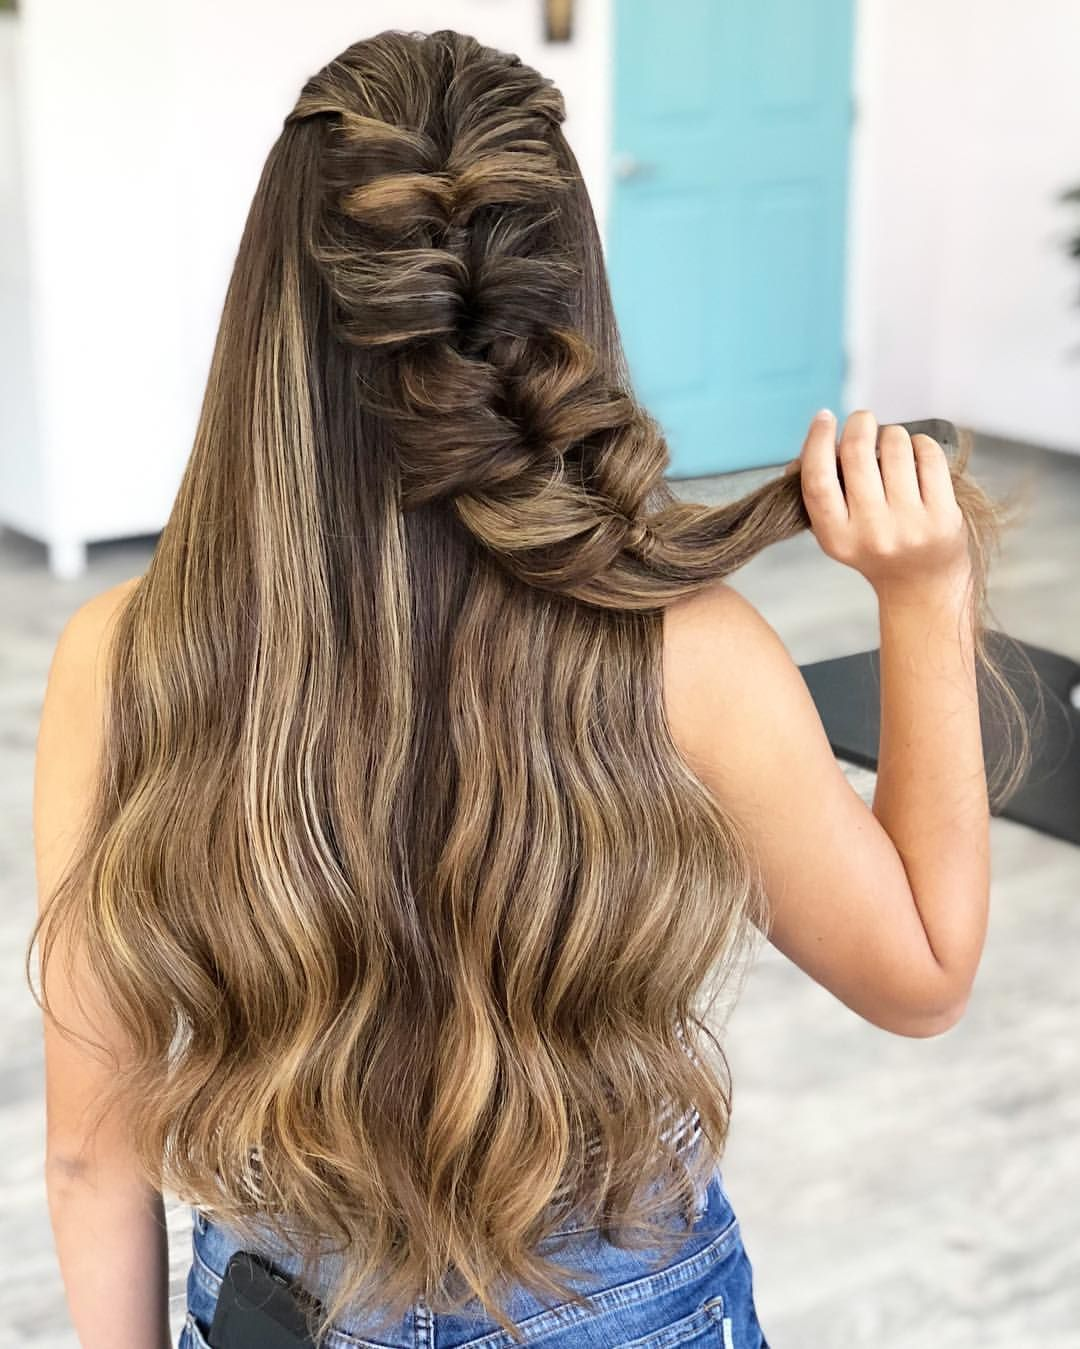 Updo Color Educator On Instagram 13 Year Old Client Make Me A Braid That S Not A Braid An Updo That S Not An Updo Me I Got You Join Me On October